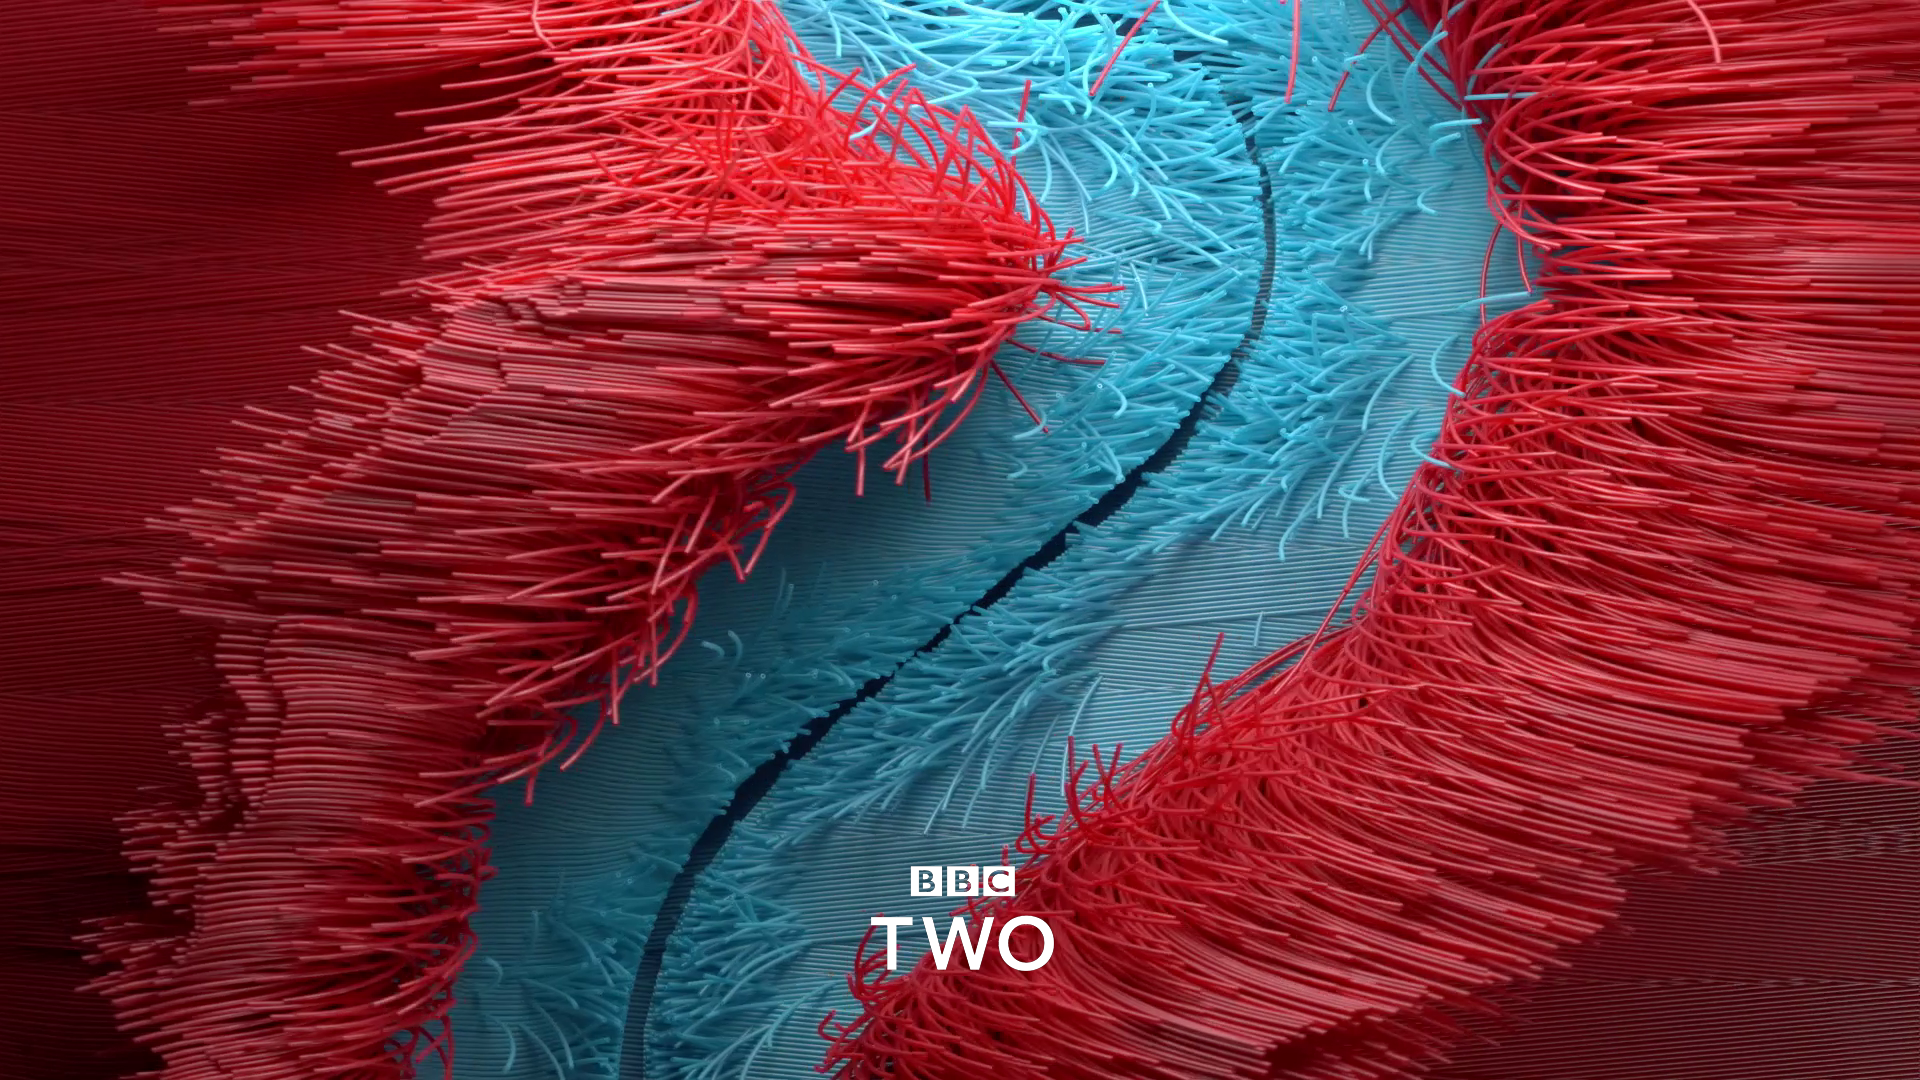 BBC2 02.png